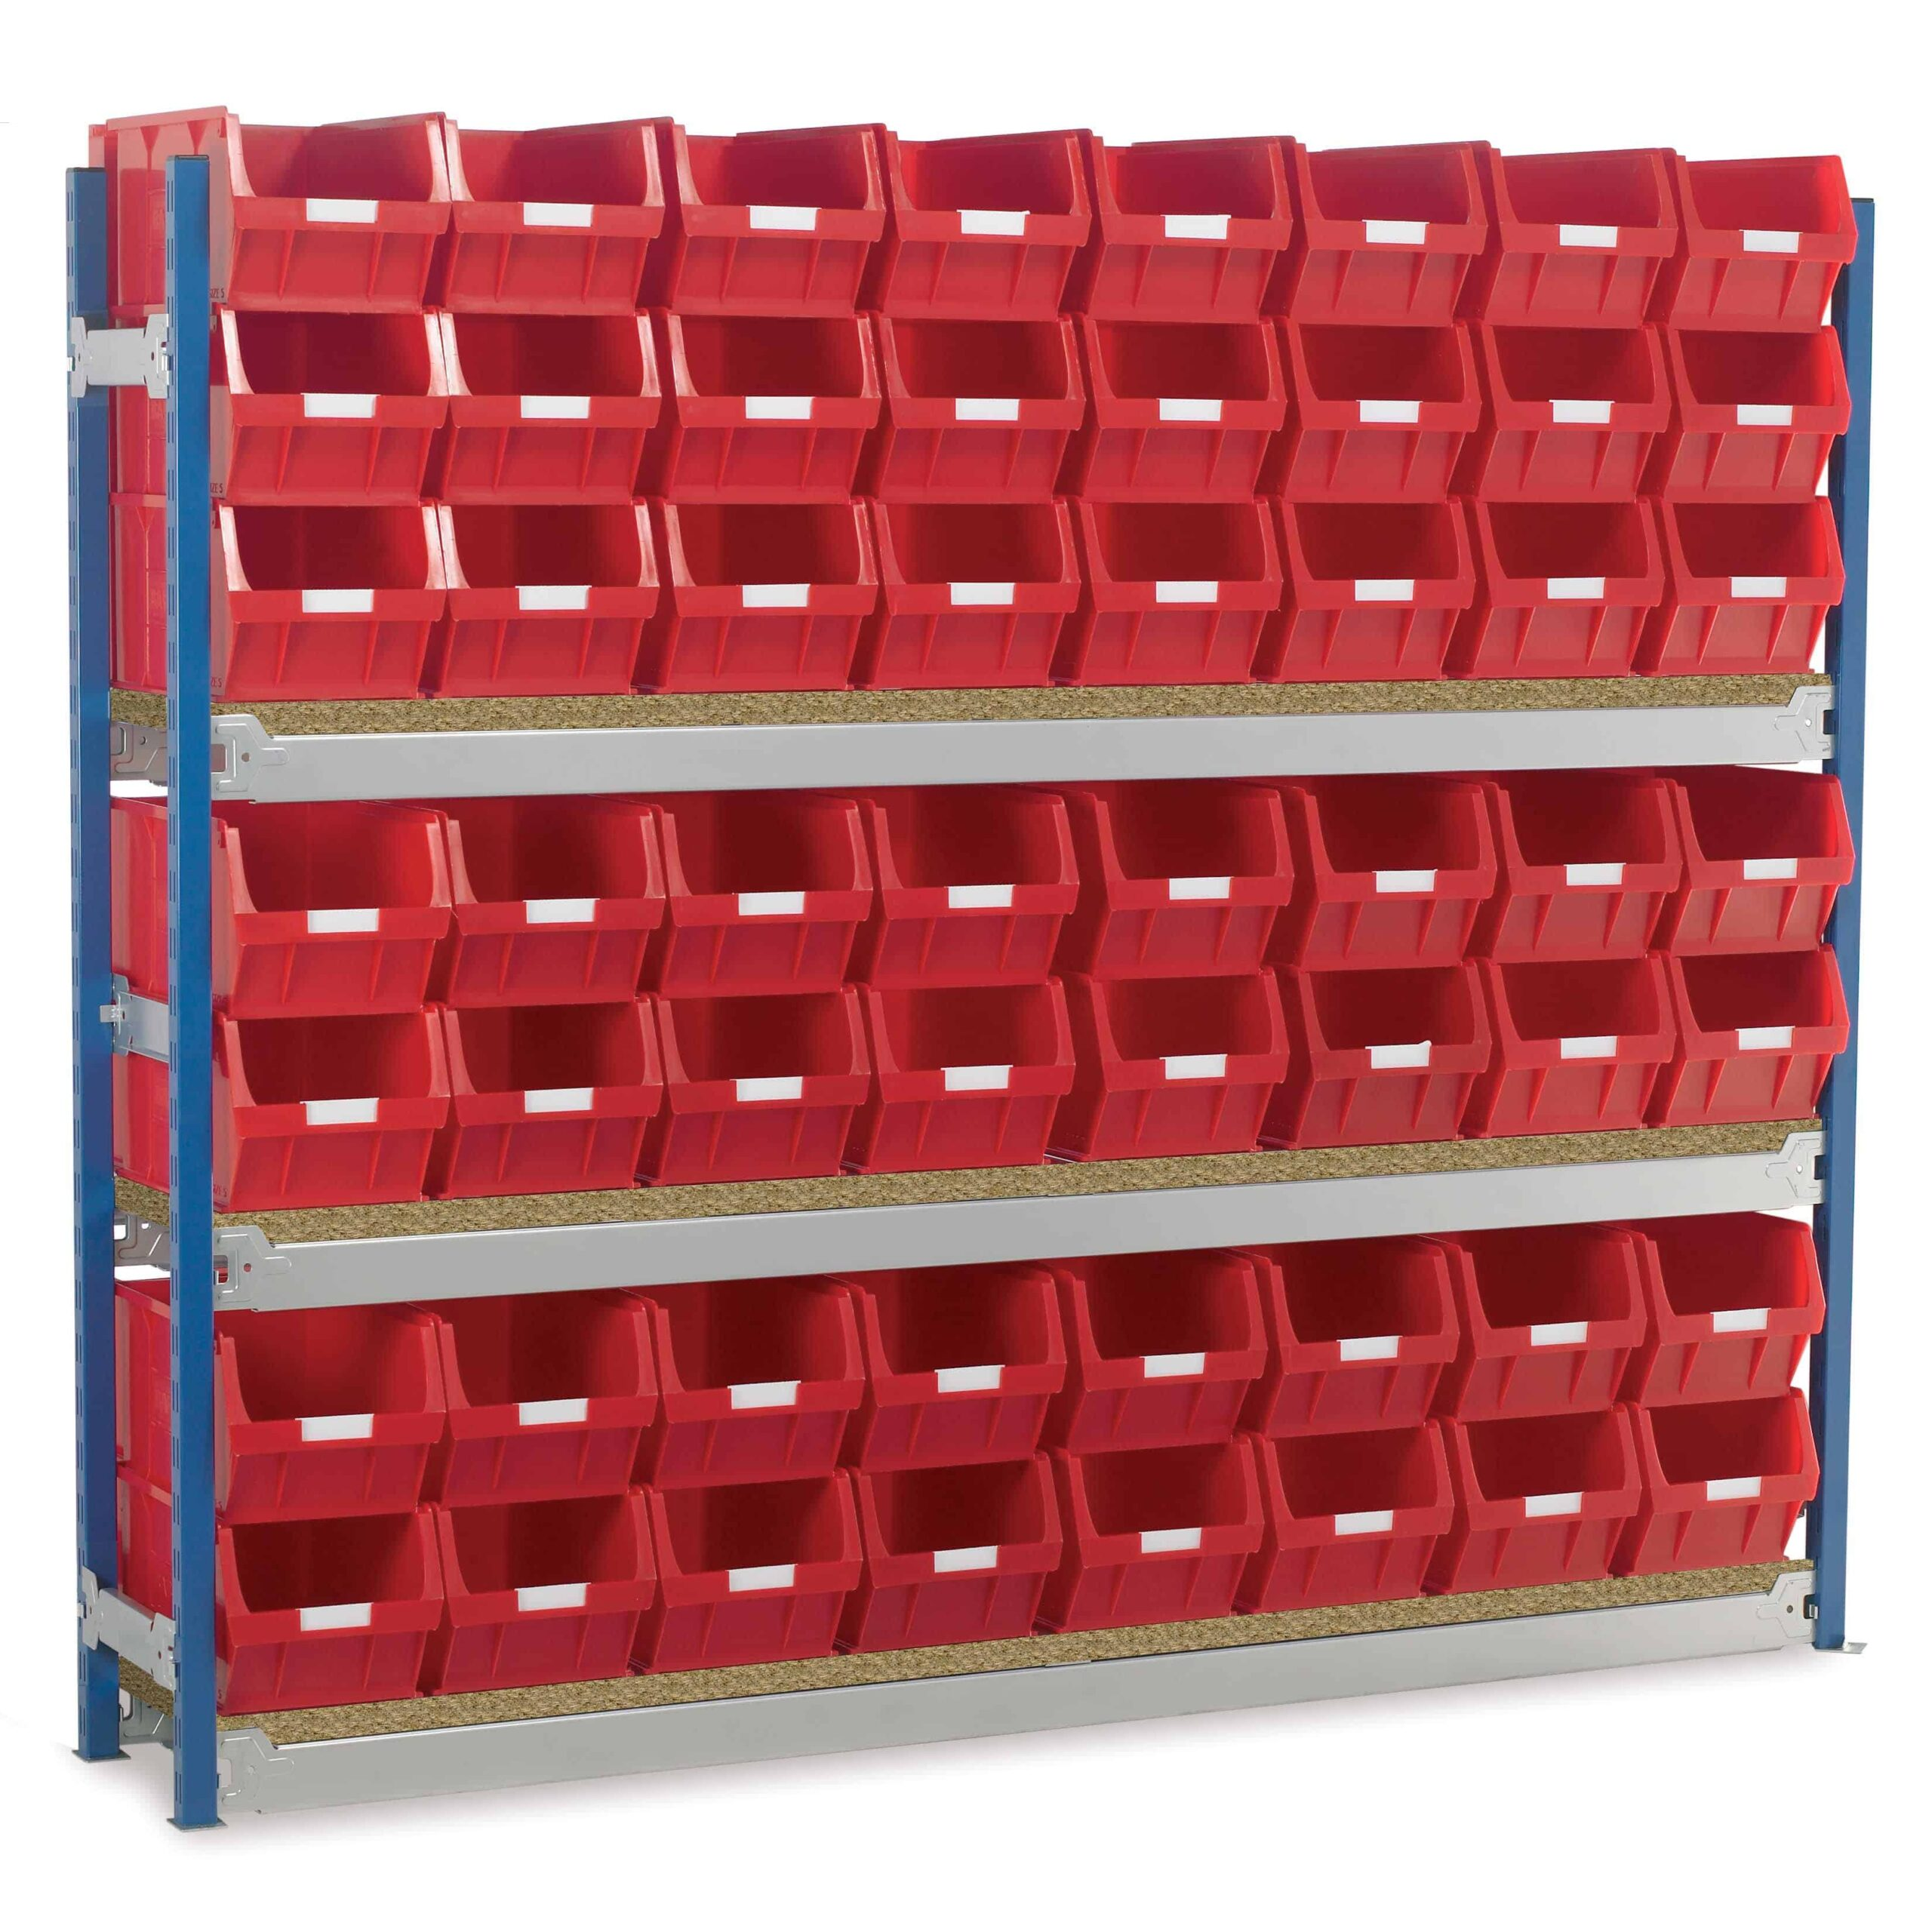 Toprax Longspan Bay Shelving TC5 Bin Kits